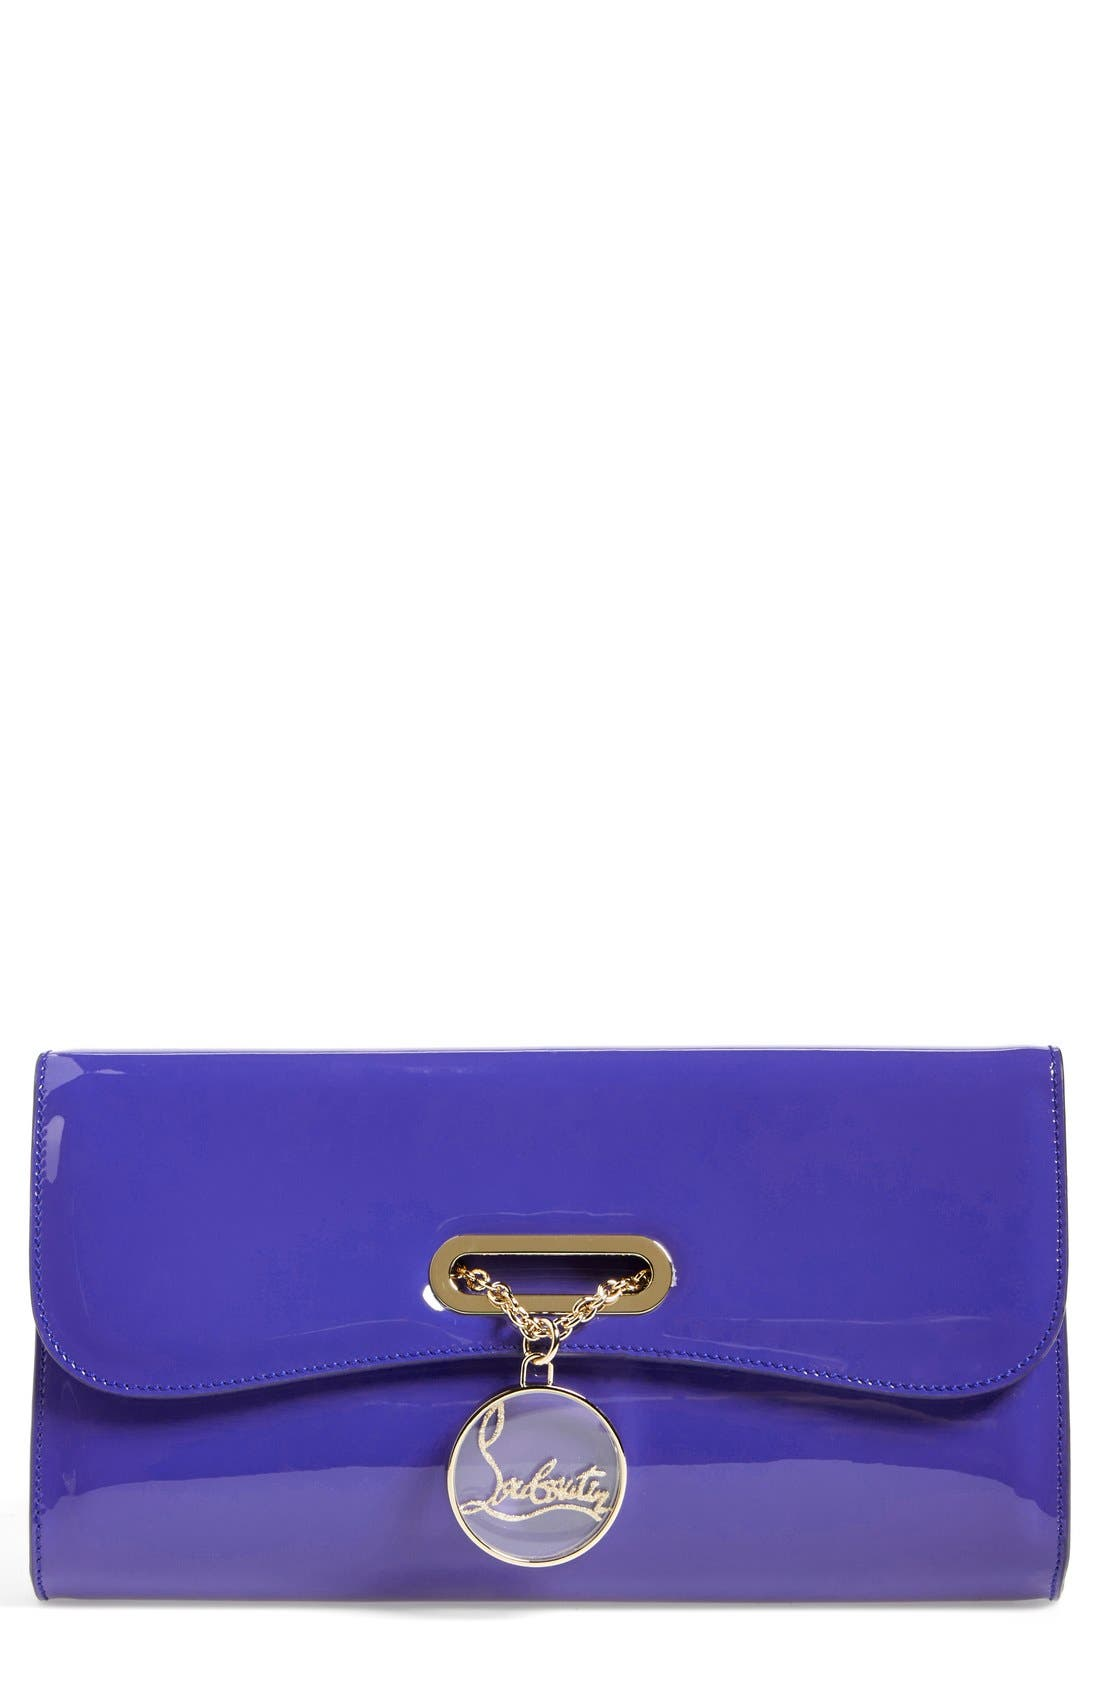 Alternate Image 1 Selected - Christian Louboutin 'Riviera' Patent Leather Clutch